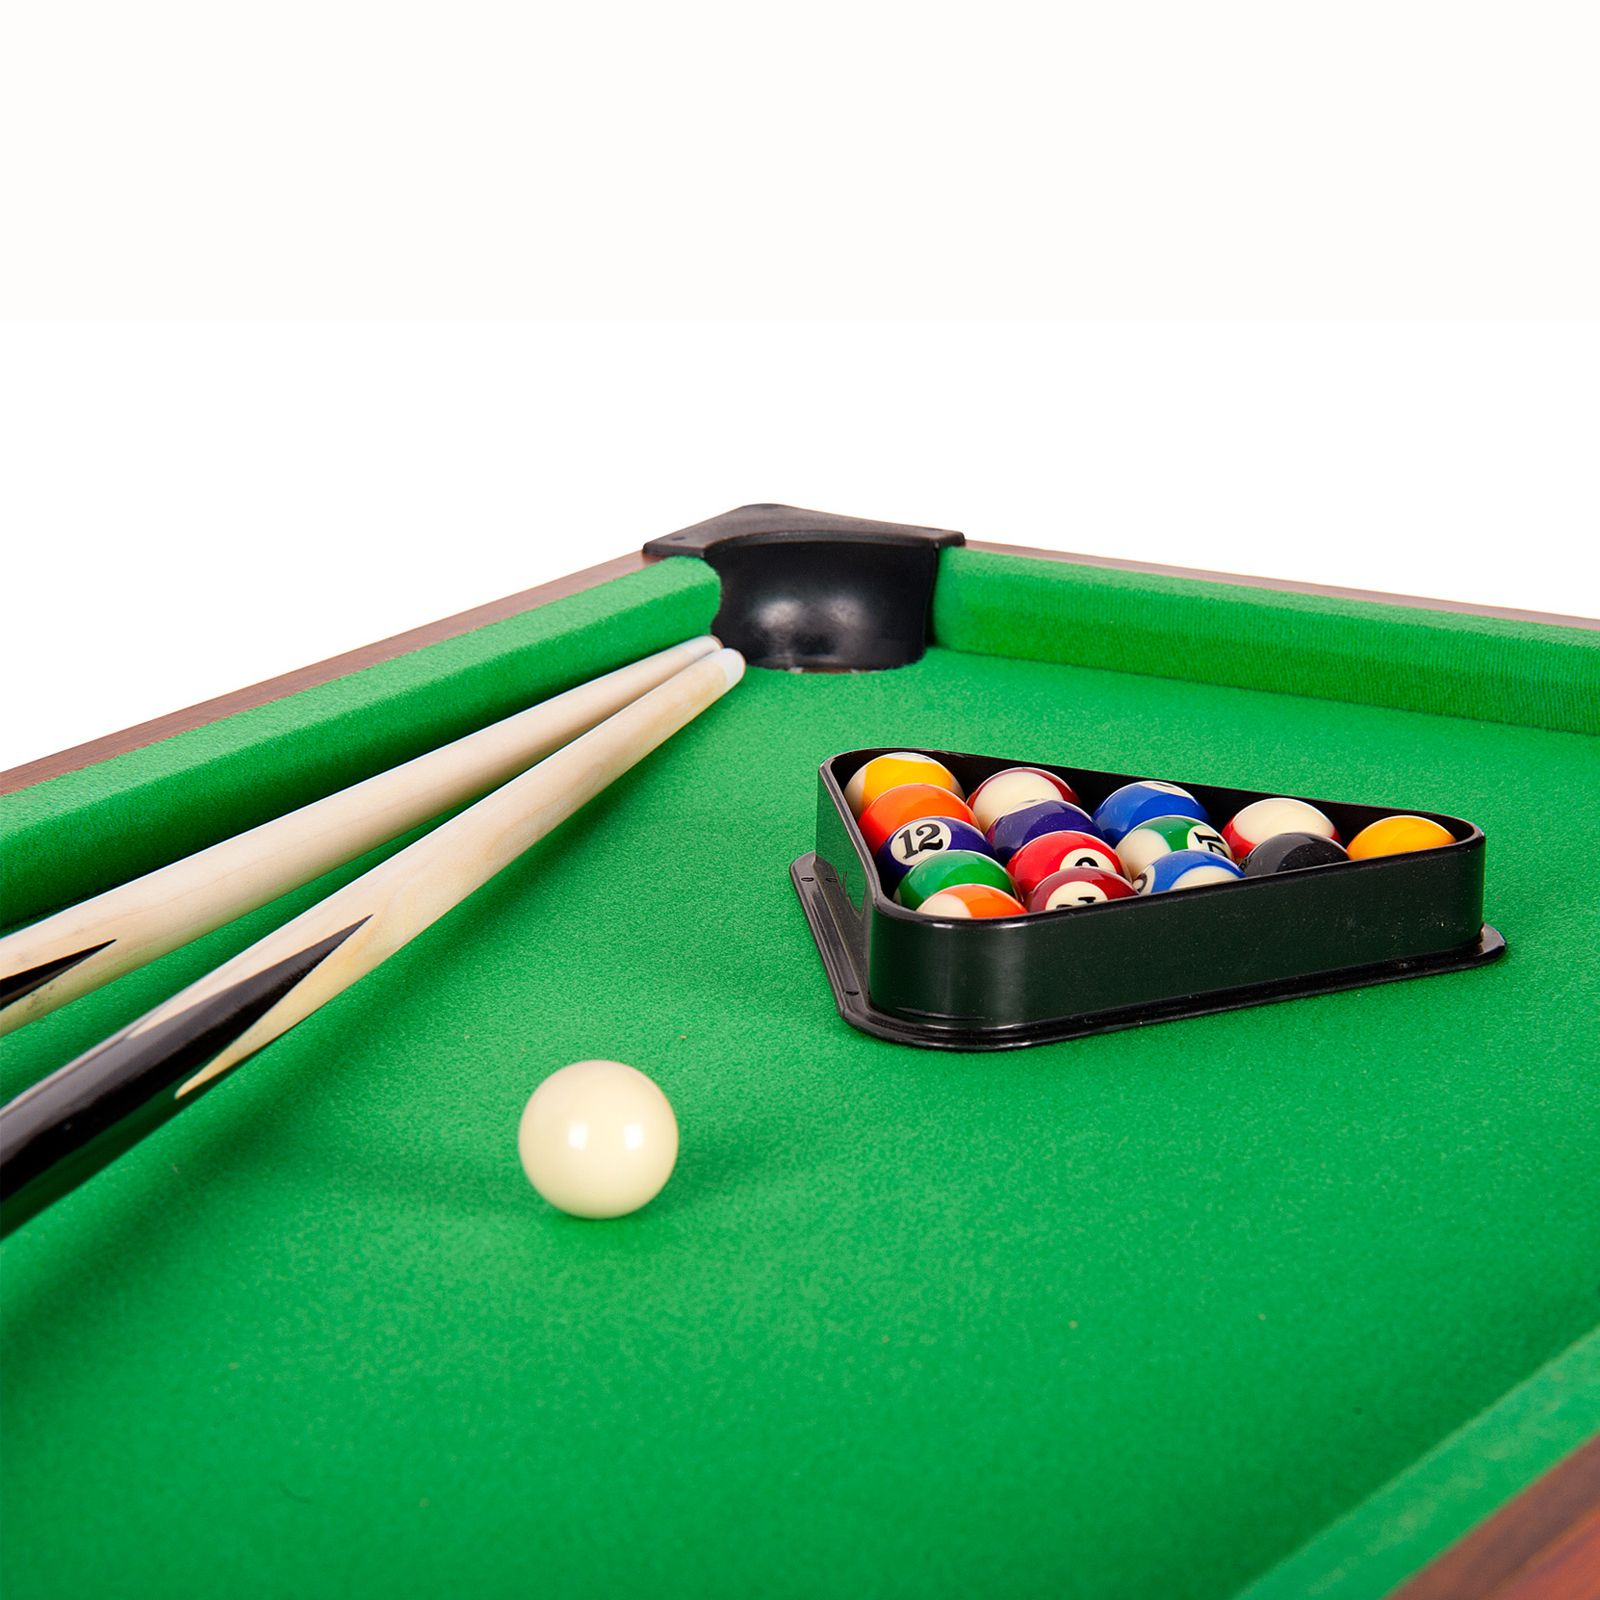 Portable piscine snooker table new jeux marrants sport for Piscine transportable